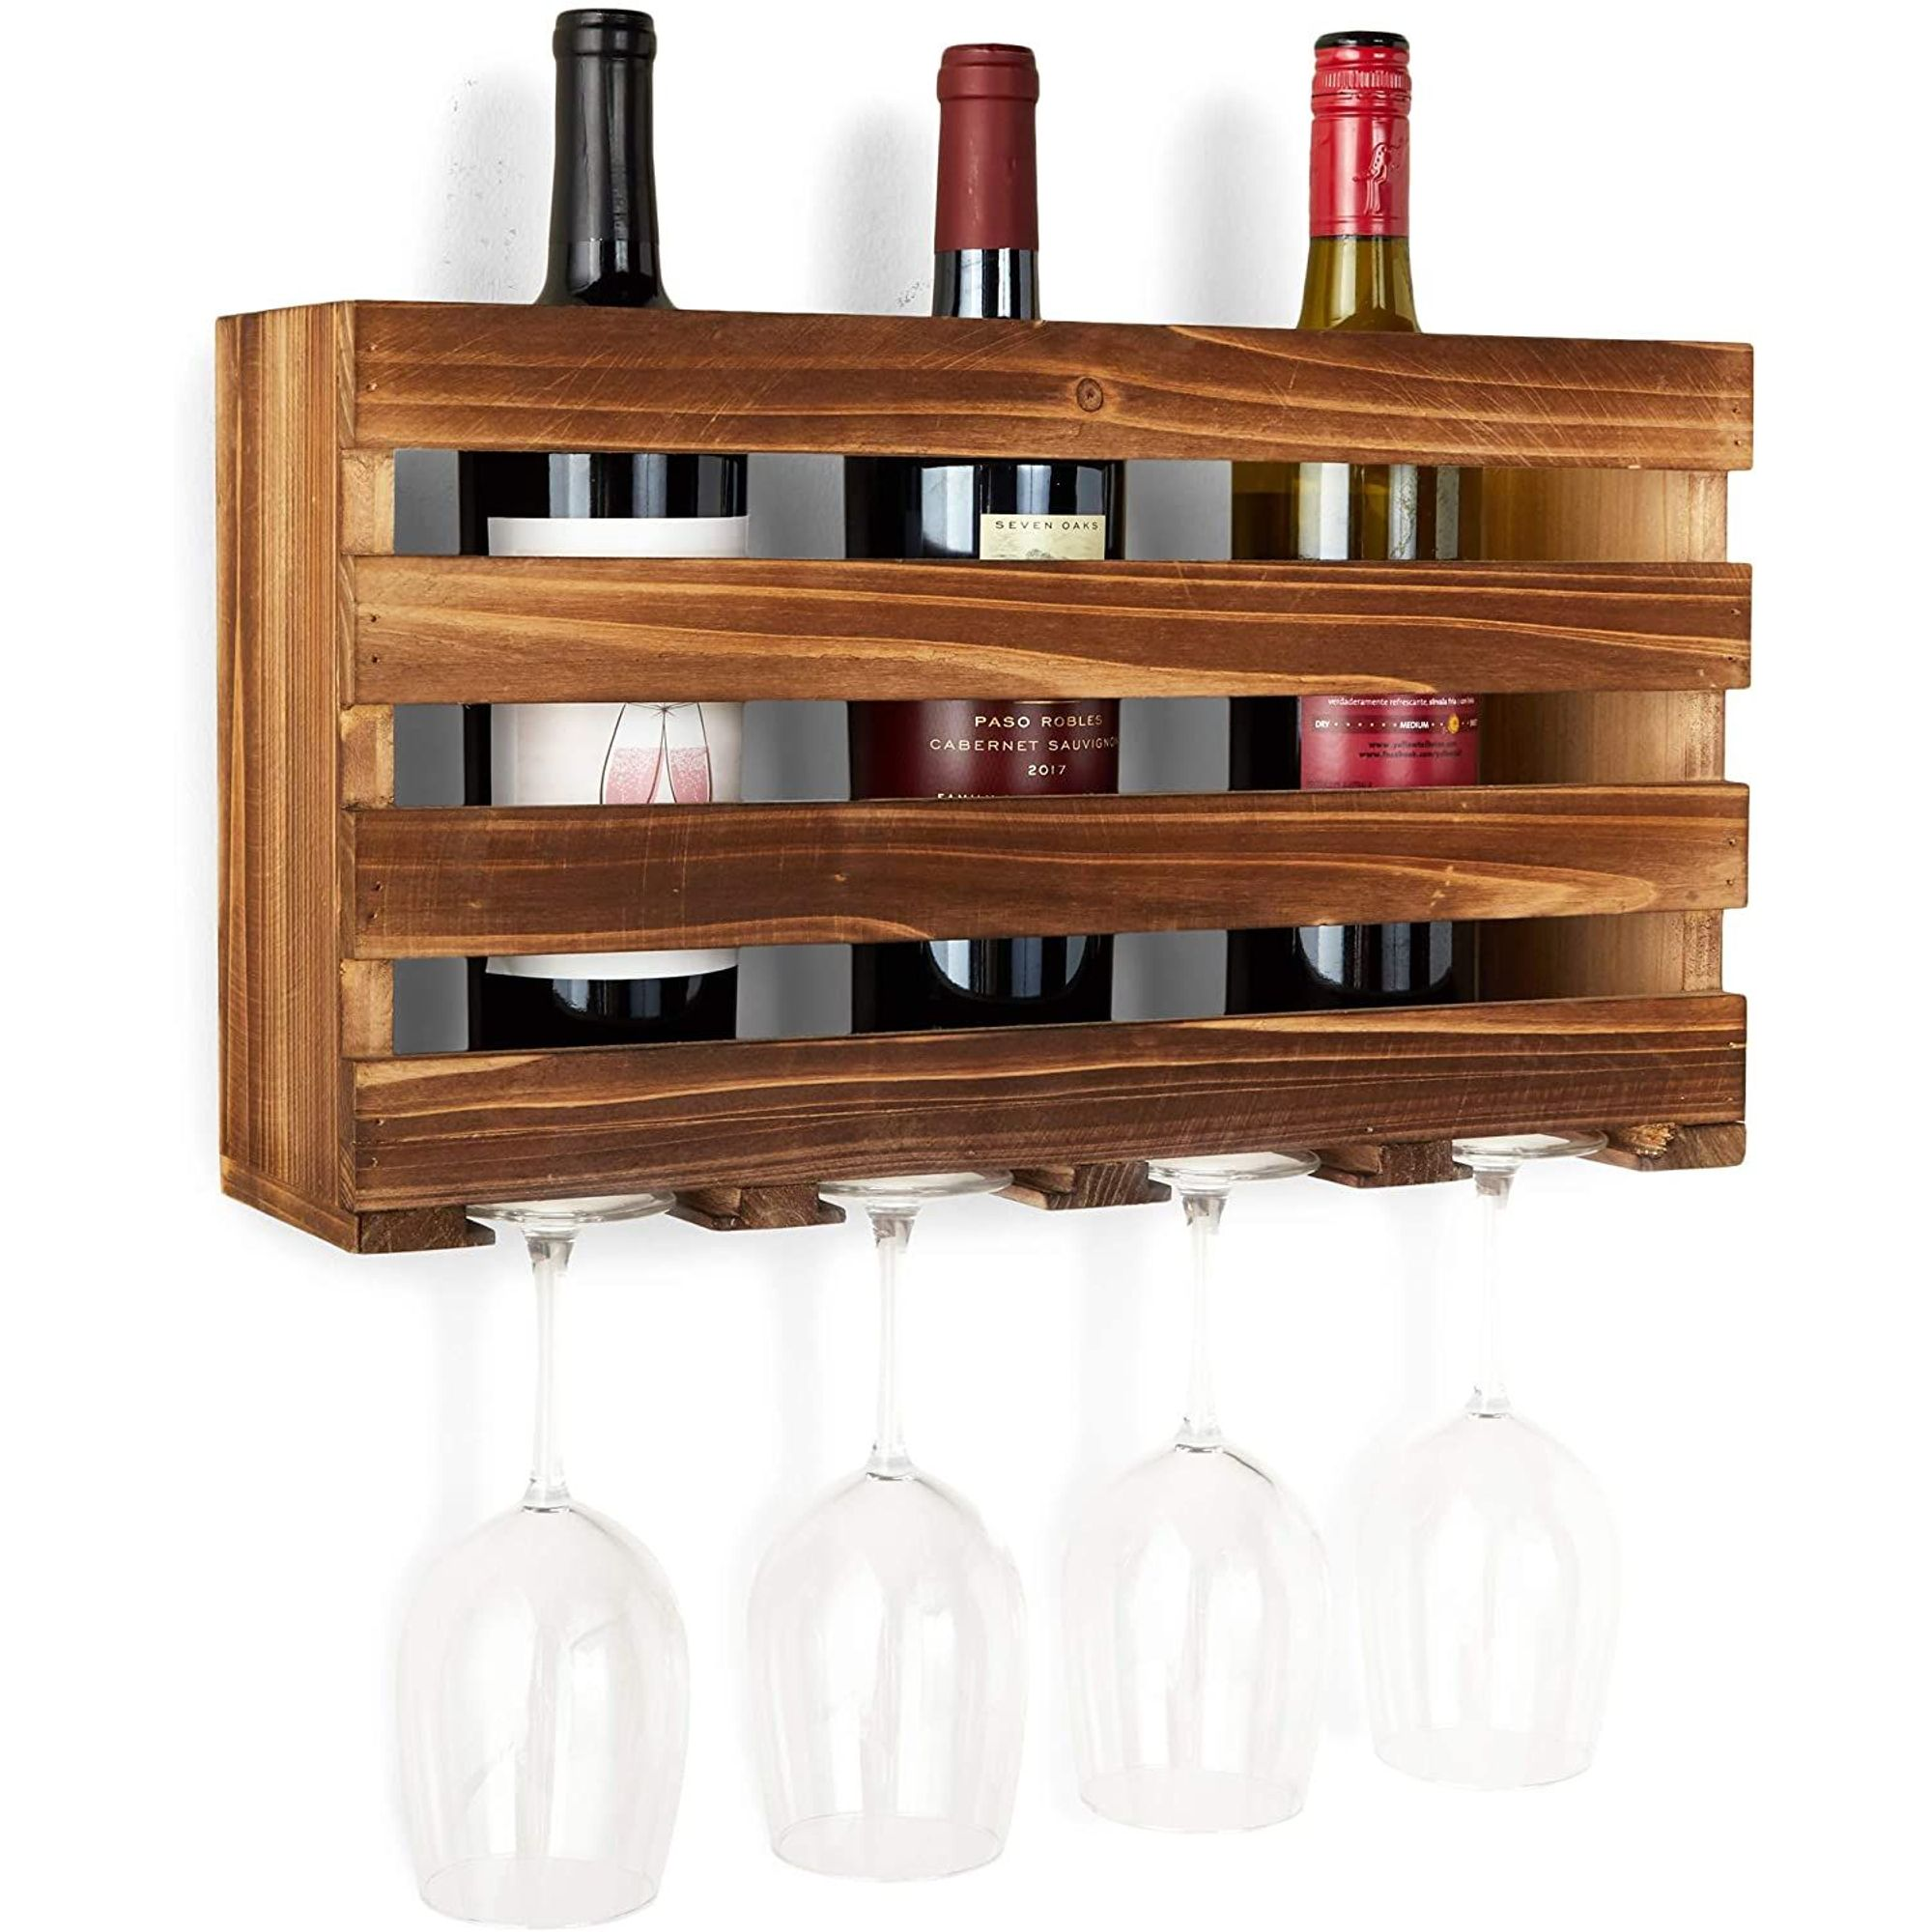 wooden wall mount wine rack with glass holder for 4 bottles brown 17 x9 x4 7